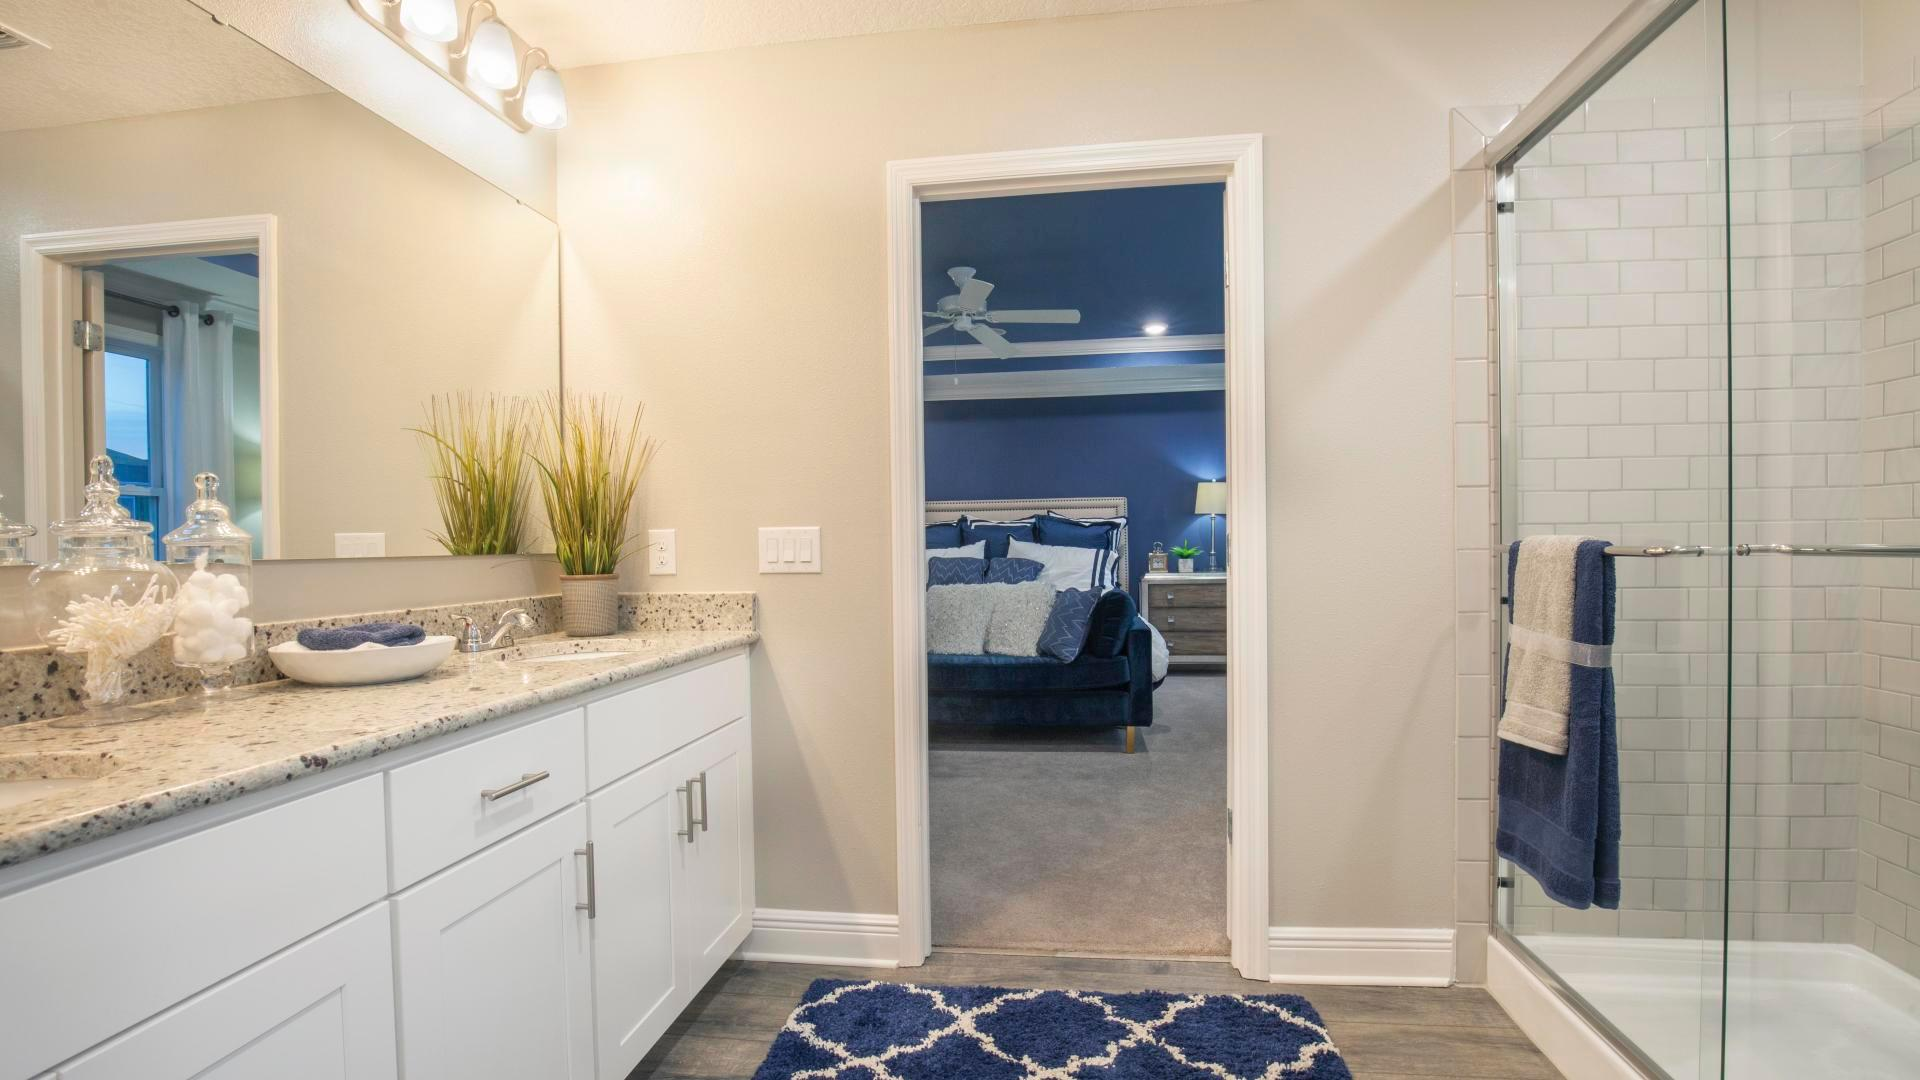 Bathroom featured in the Carlisle By Maronda Homes in Melbourne, FL